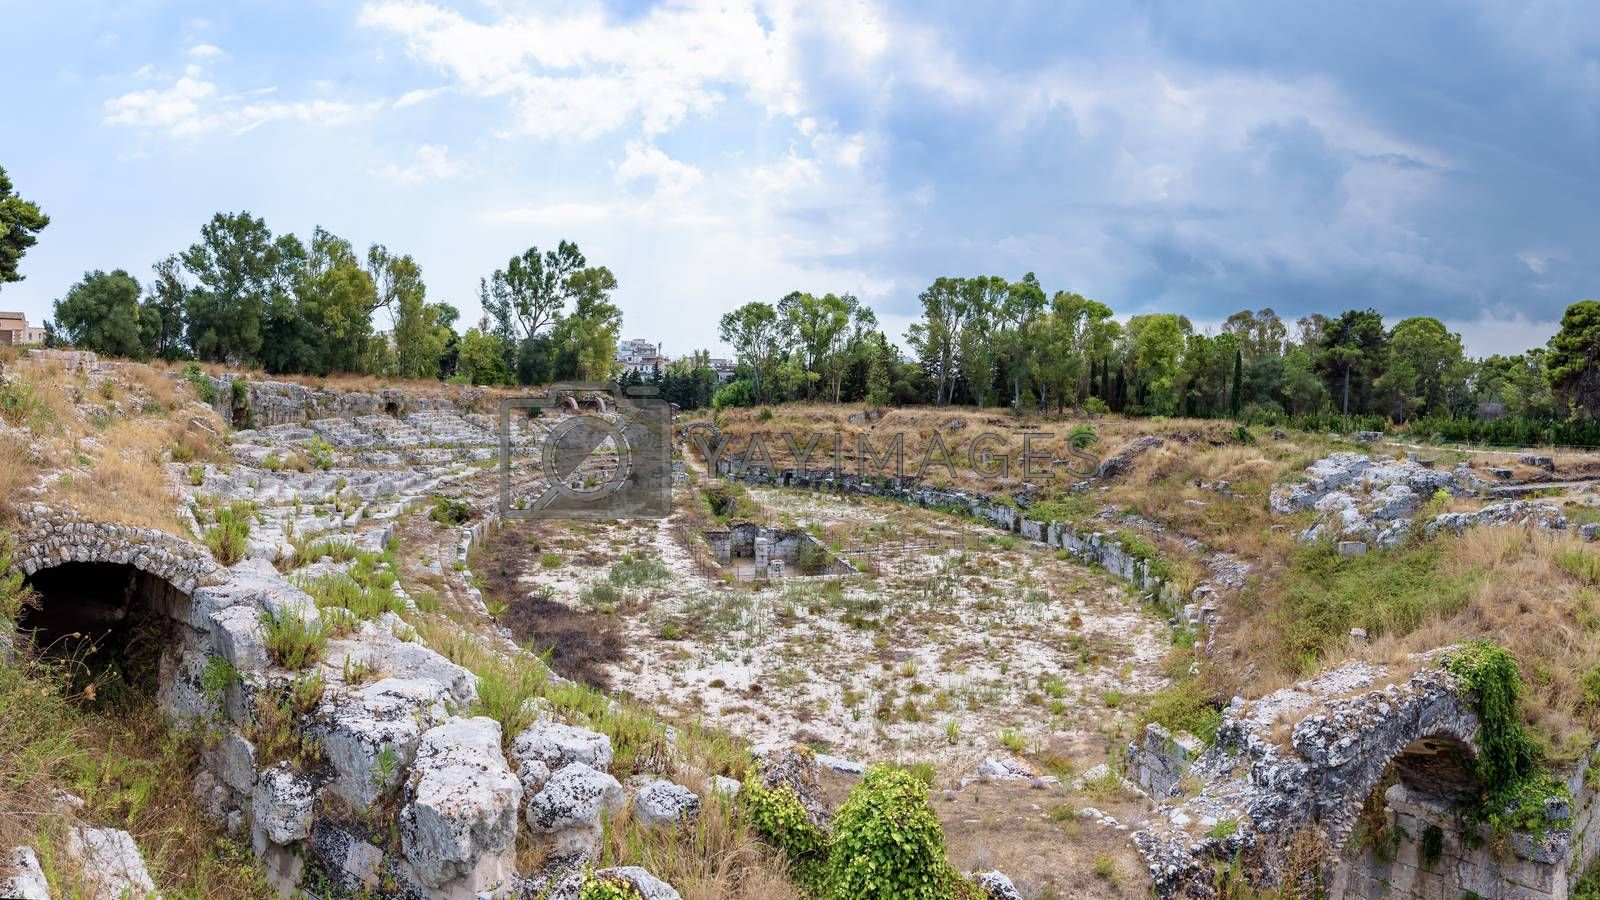 Panoramic view of ruins of the ancient roman Amphitheatre in Syracuse (Anfiteatro romano di Siracusa), Sicily, Italy